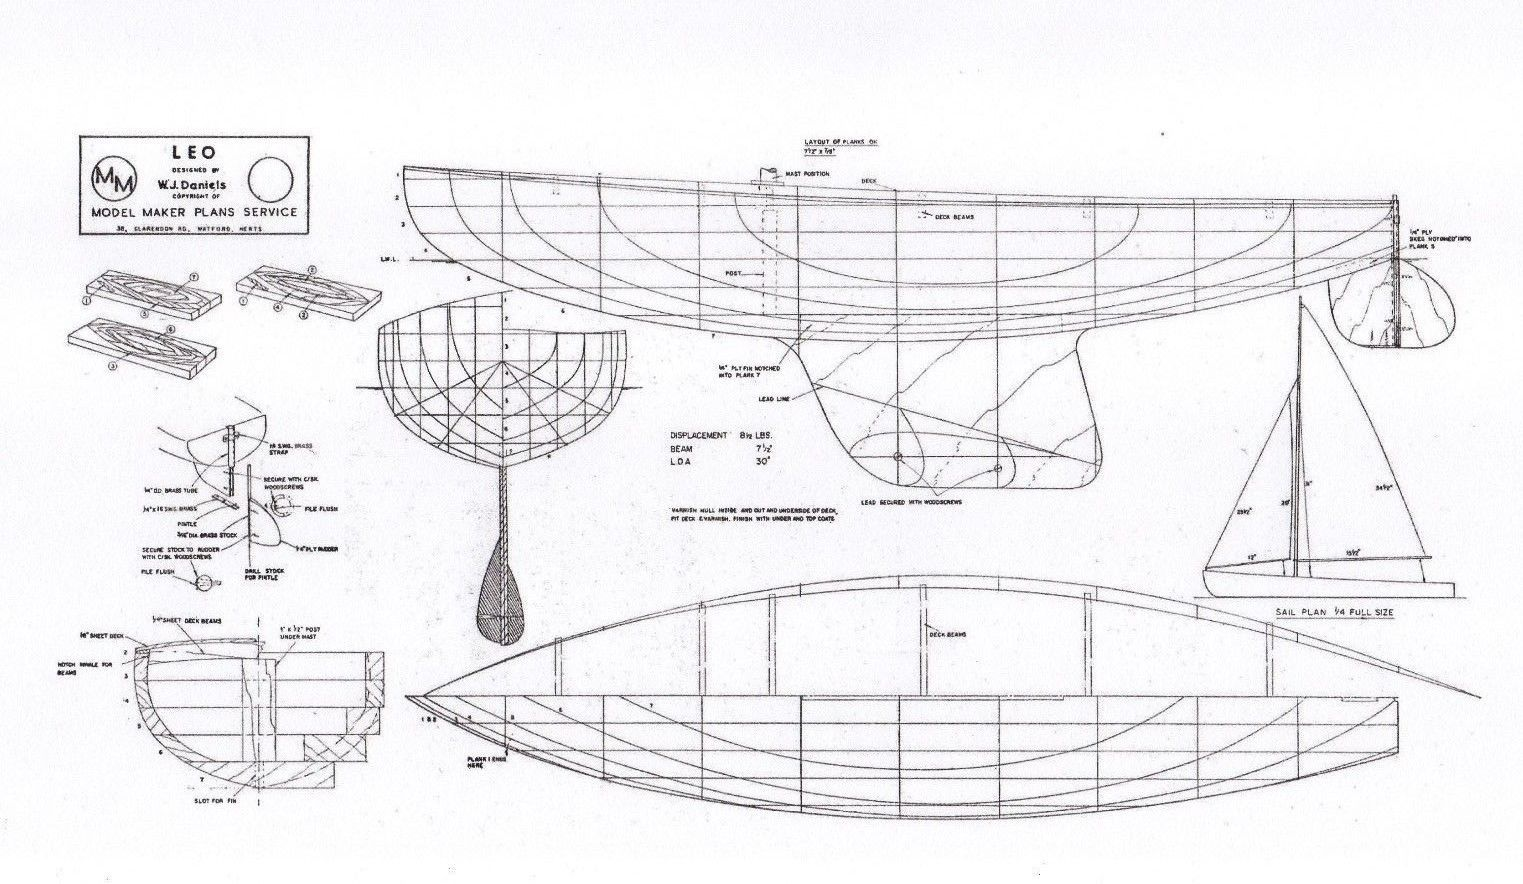 FULL SIZE PLAN FOR 'LEO' 30 INCH MODEL RACING POND YACHT